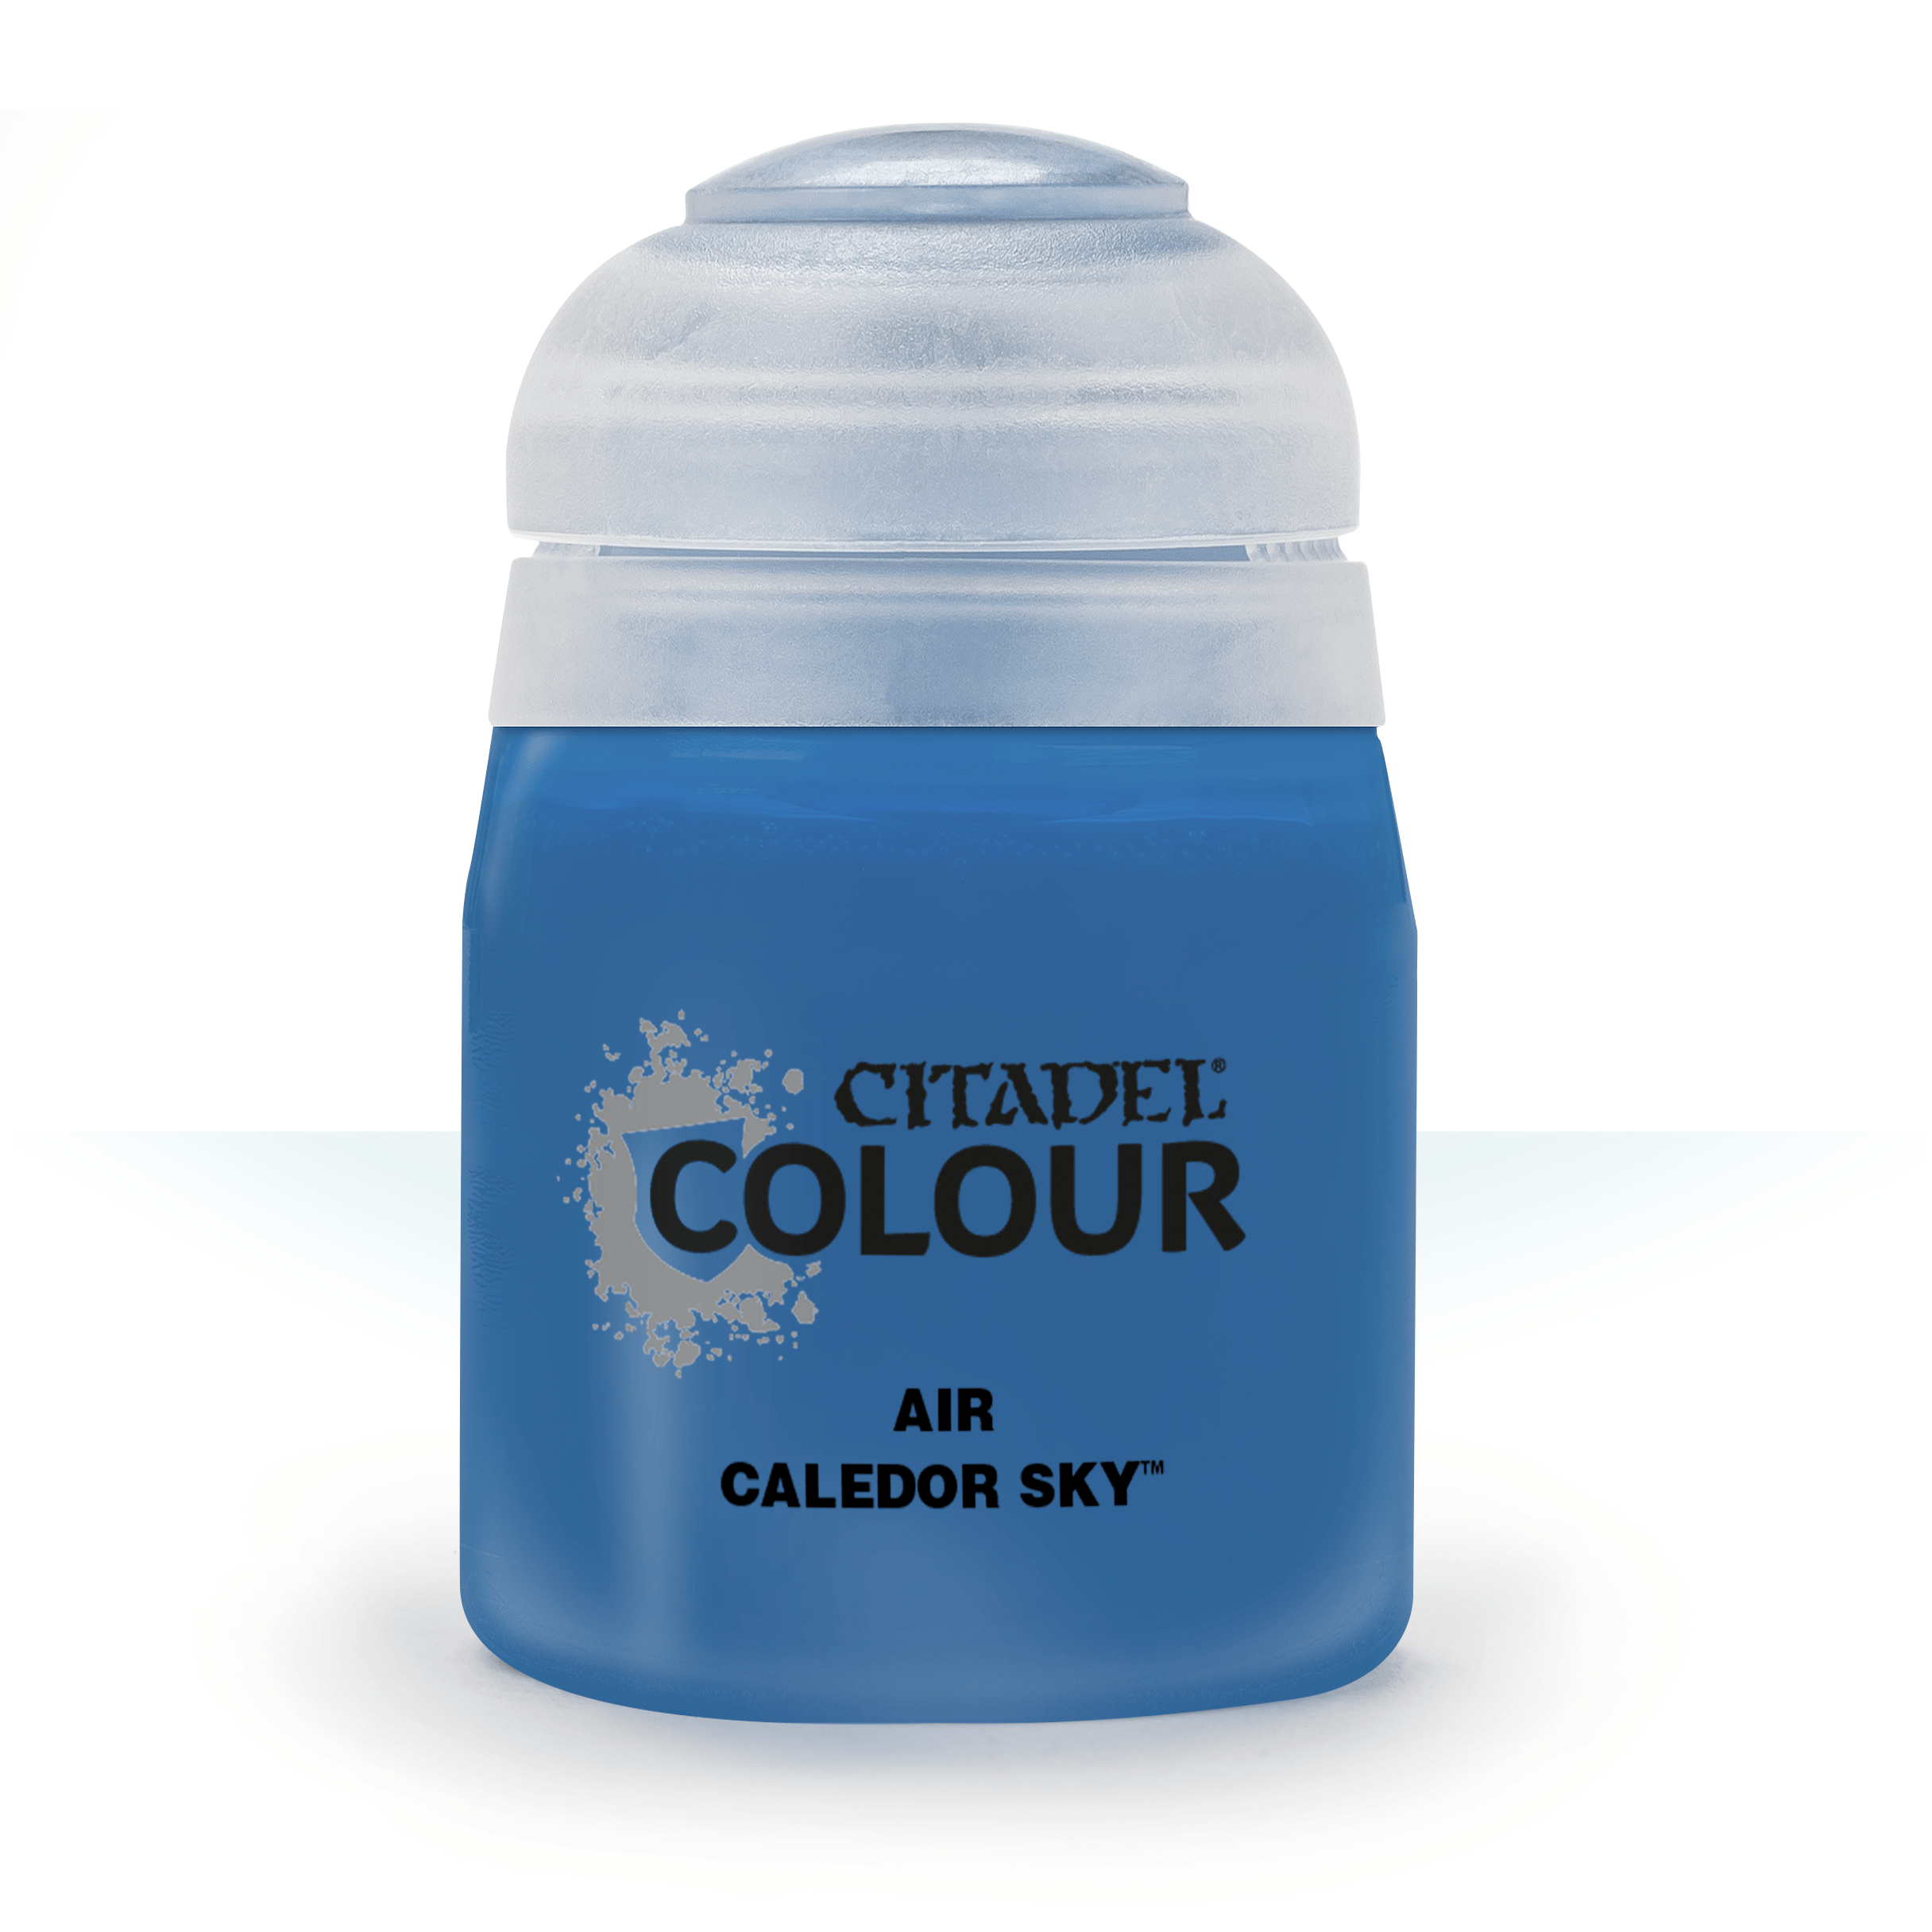 Citadel Airbrush Paints: Caledor Sky Air (24ML)